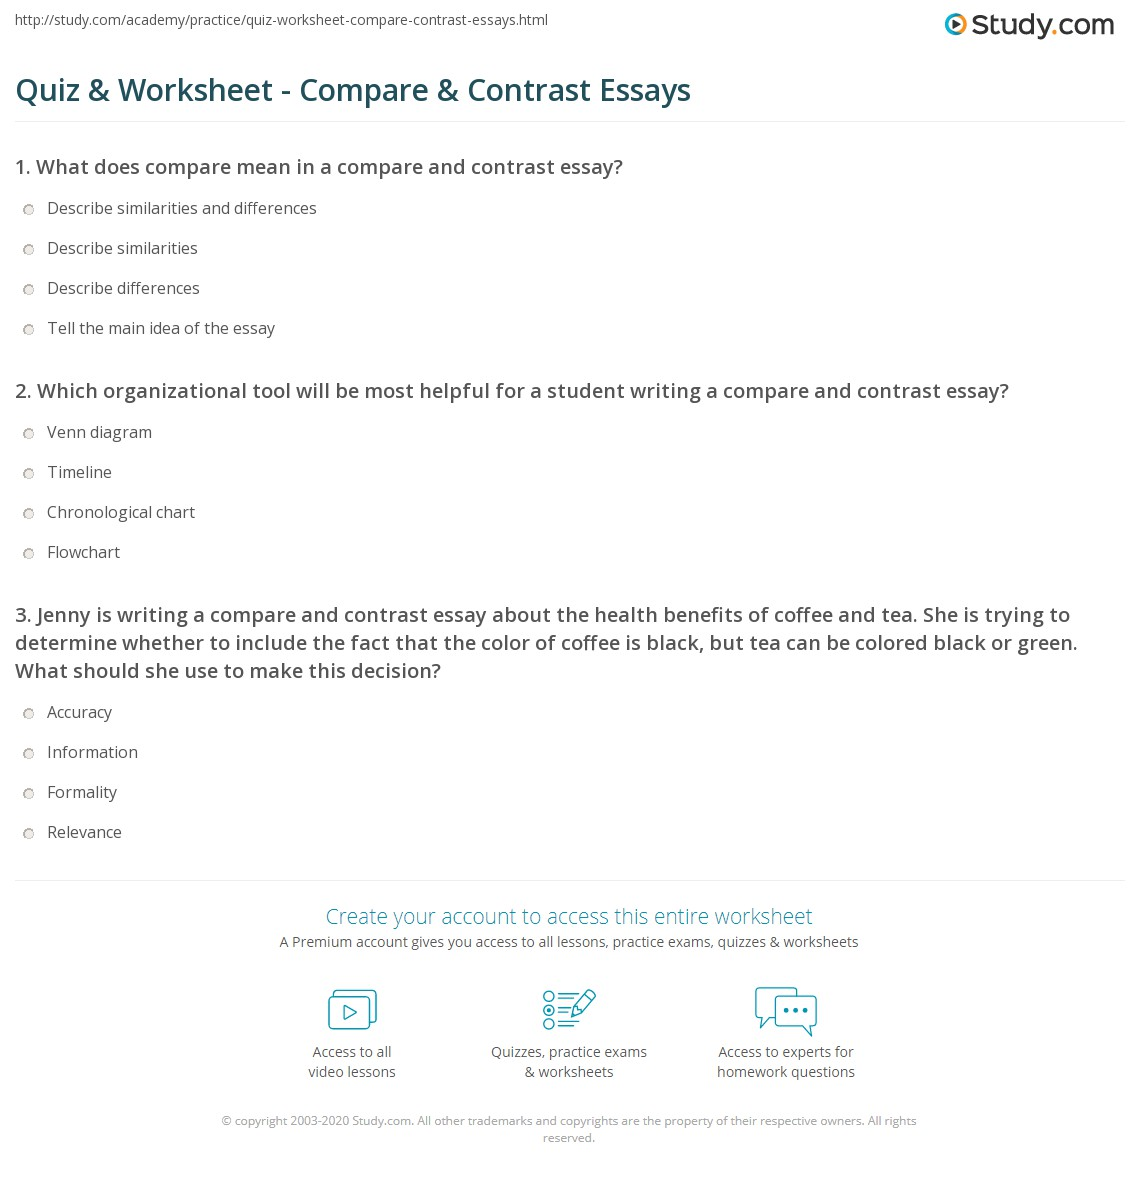 compare and contrast essay topics examples quiz worksheet compare  quiz worksheet compare contrast essays com print compare contrast essay definition topics examples worksheet